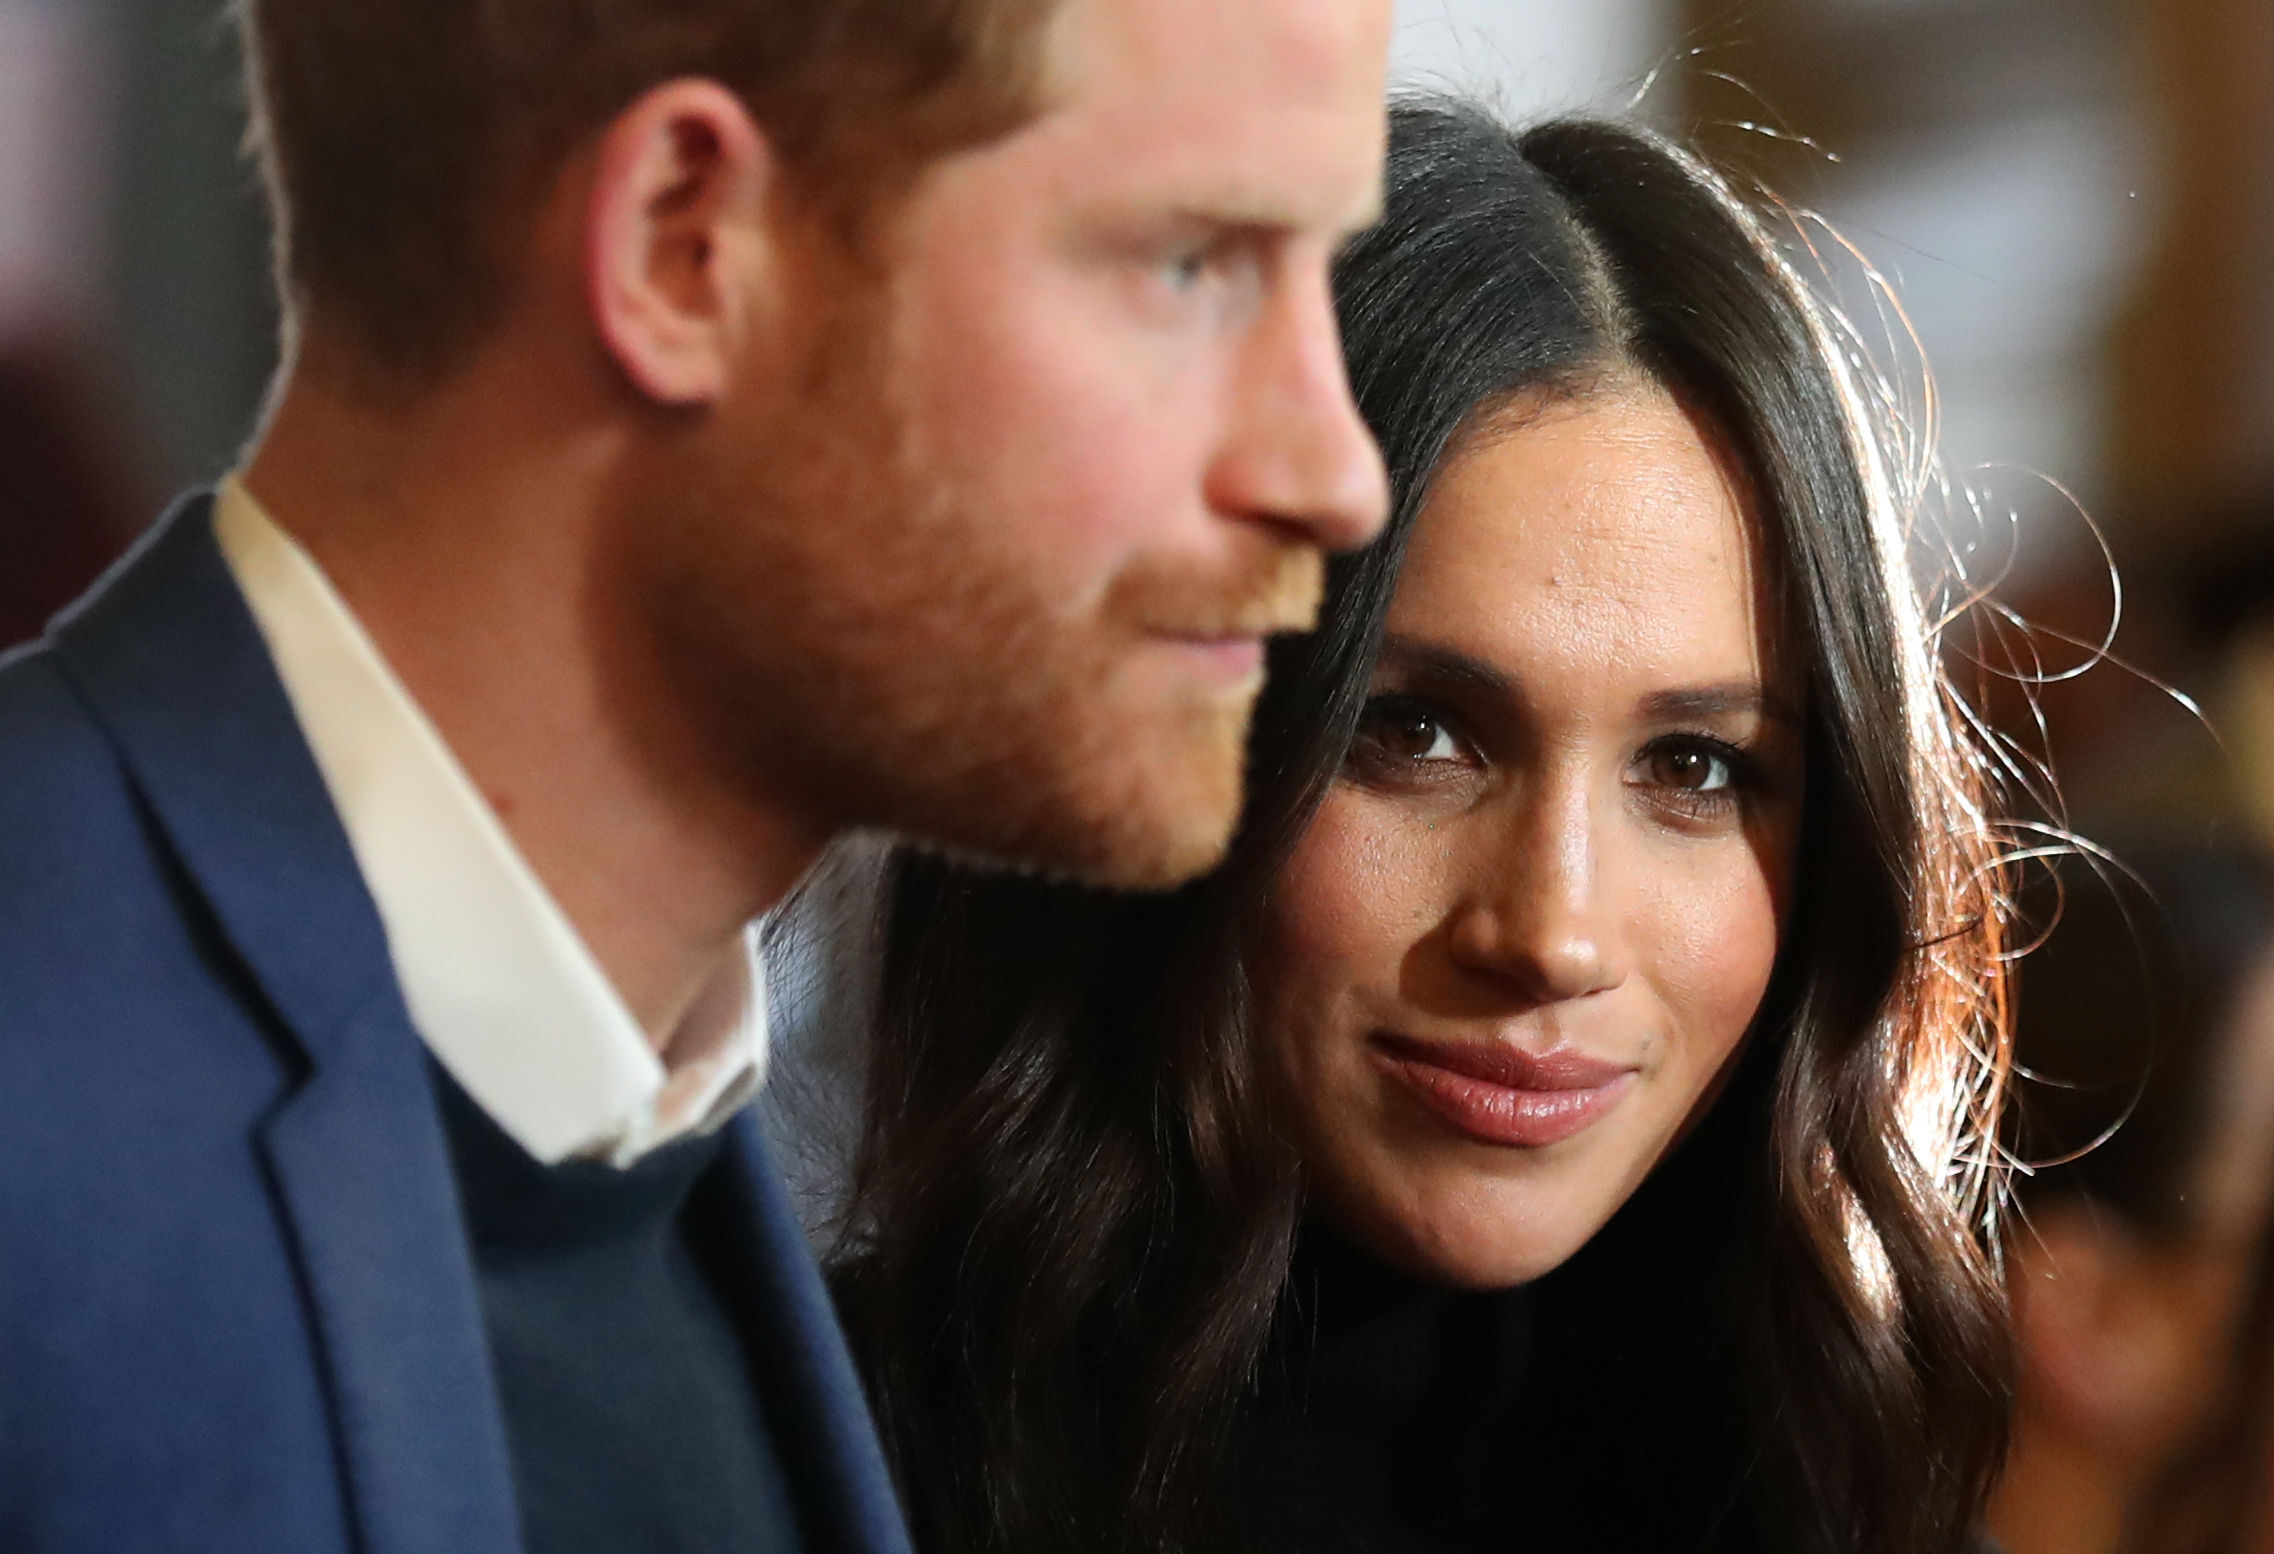 'Racist' letter with white powder sent to Prince Harry, Meghan Markle